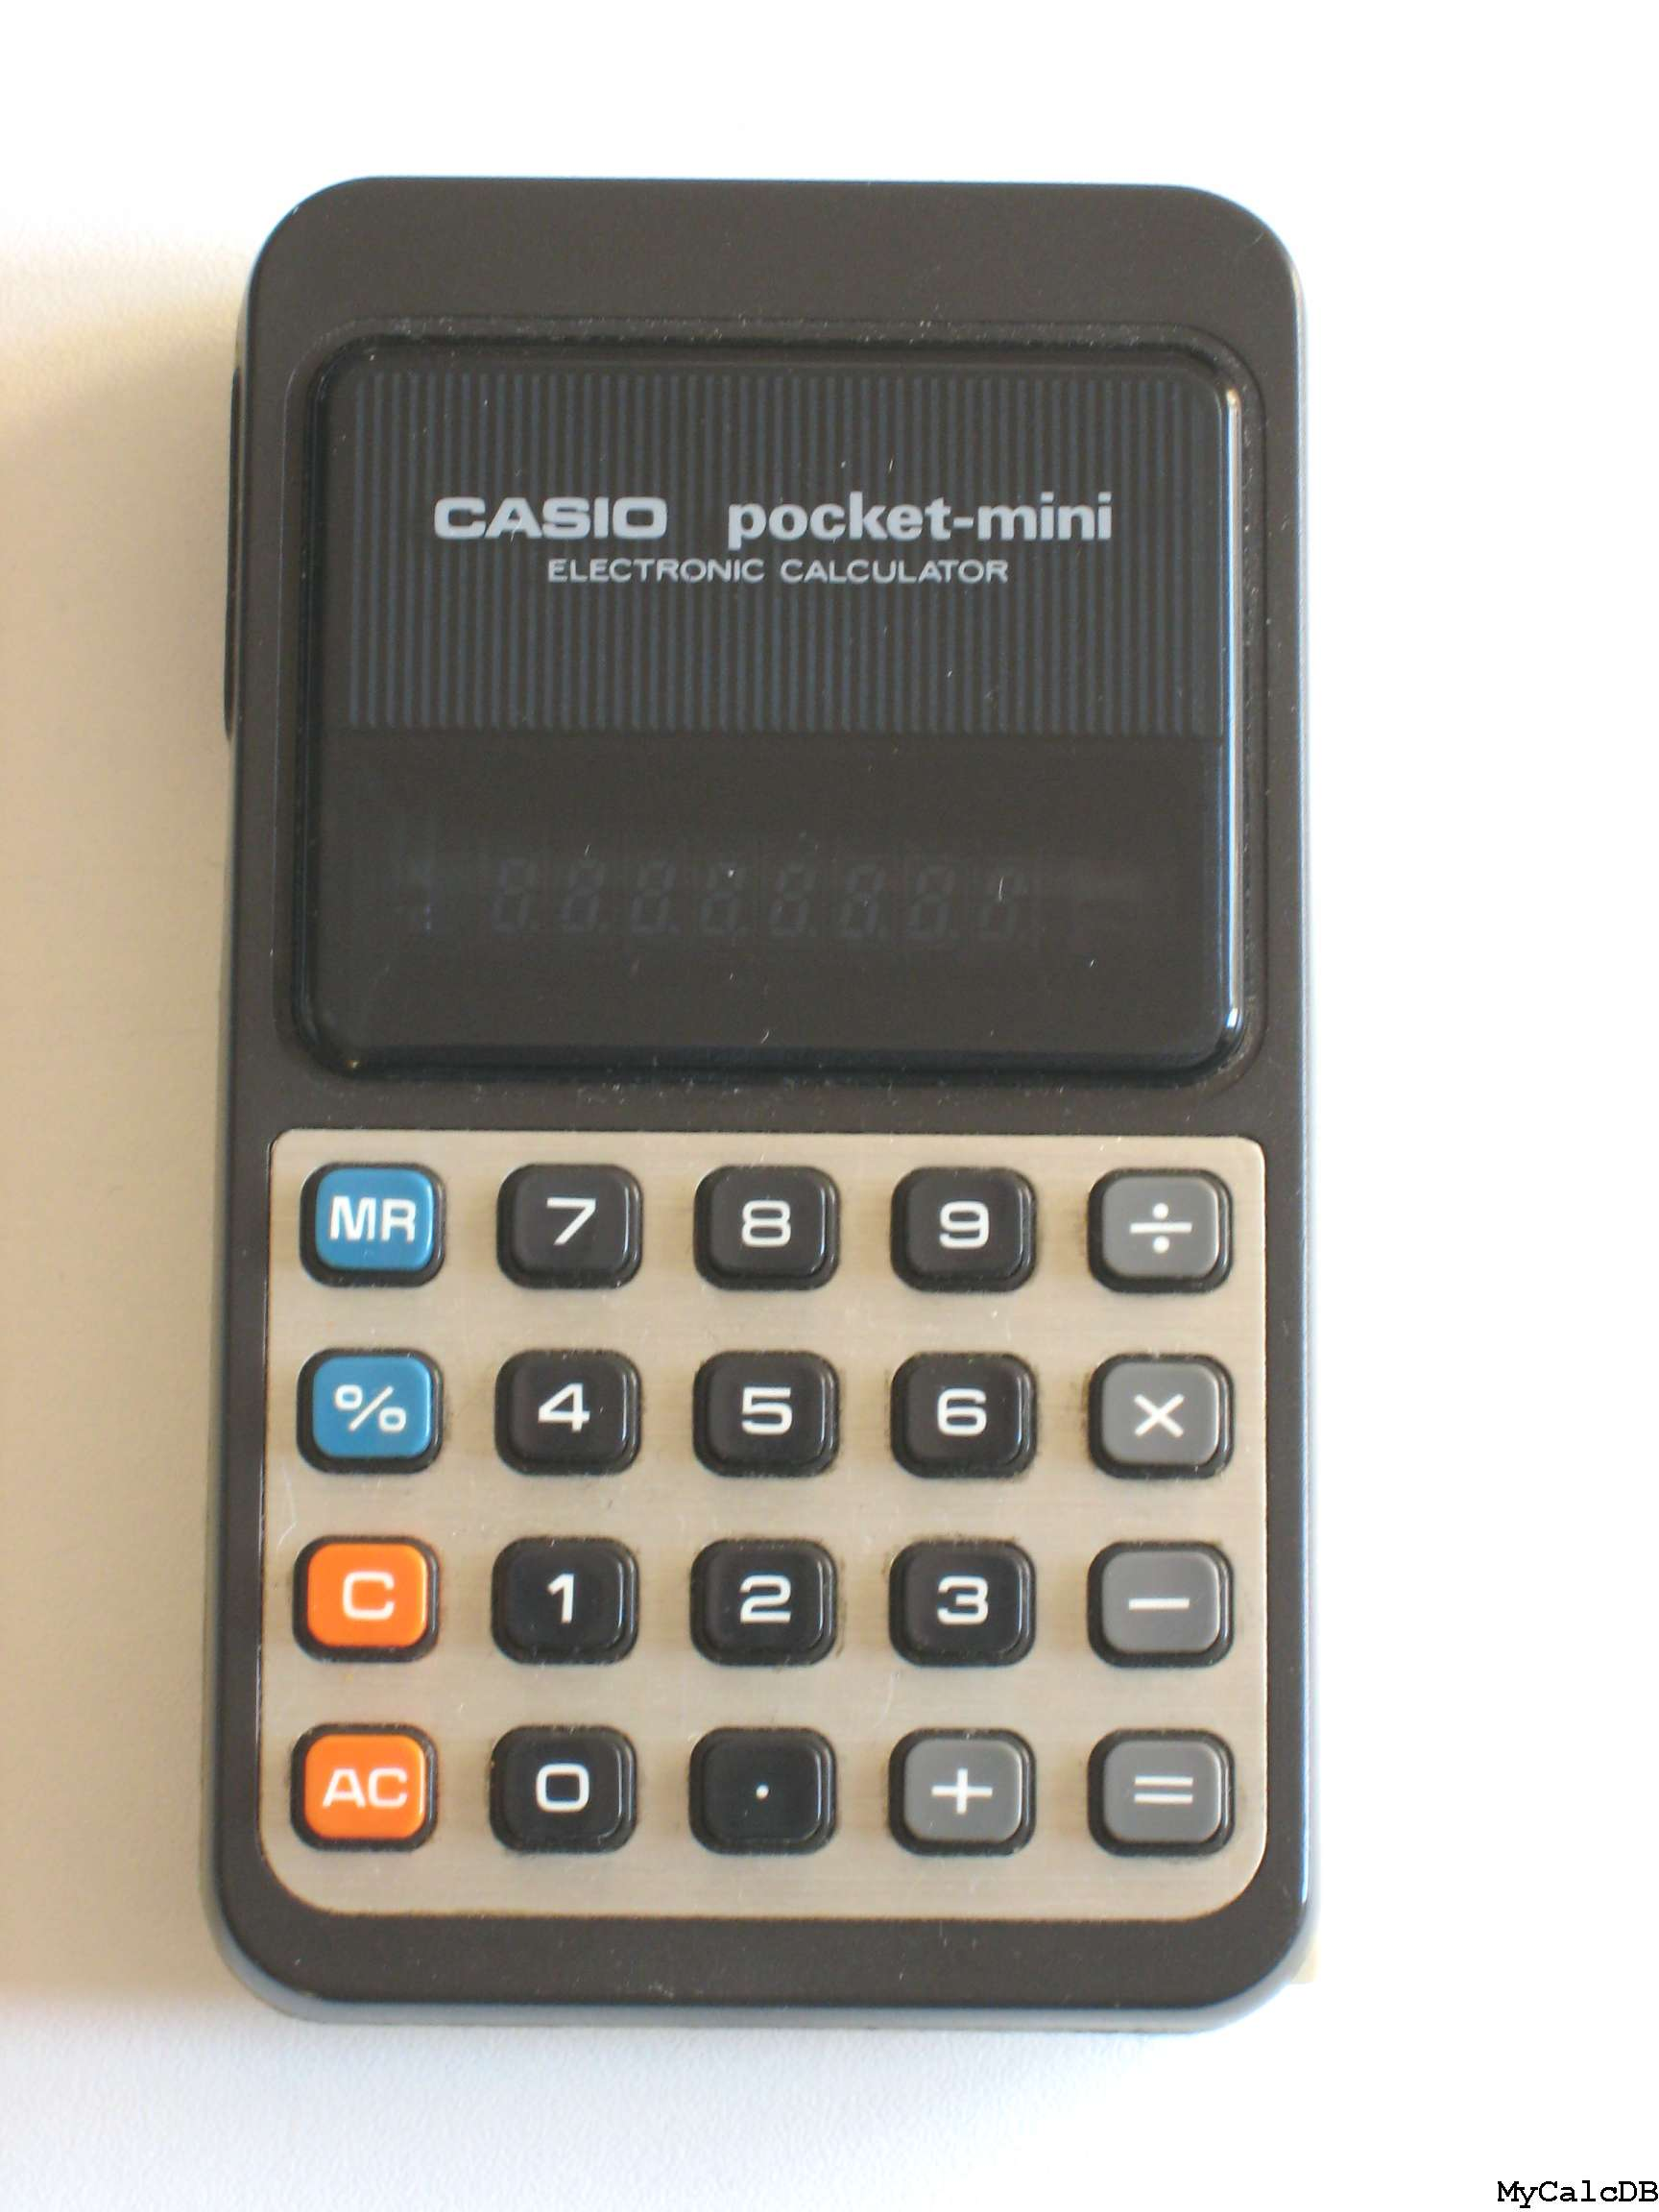 Casio pocket-mini